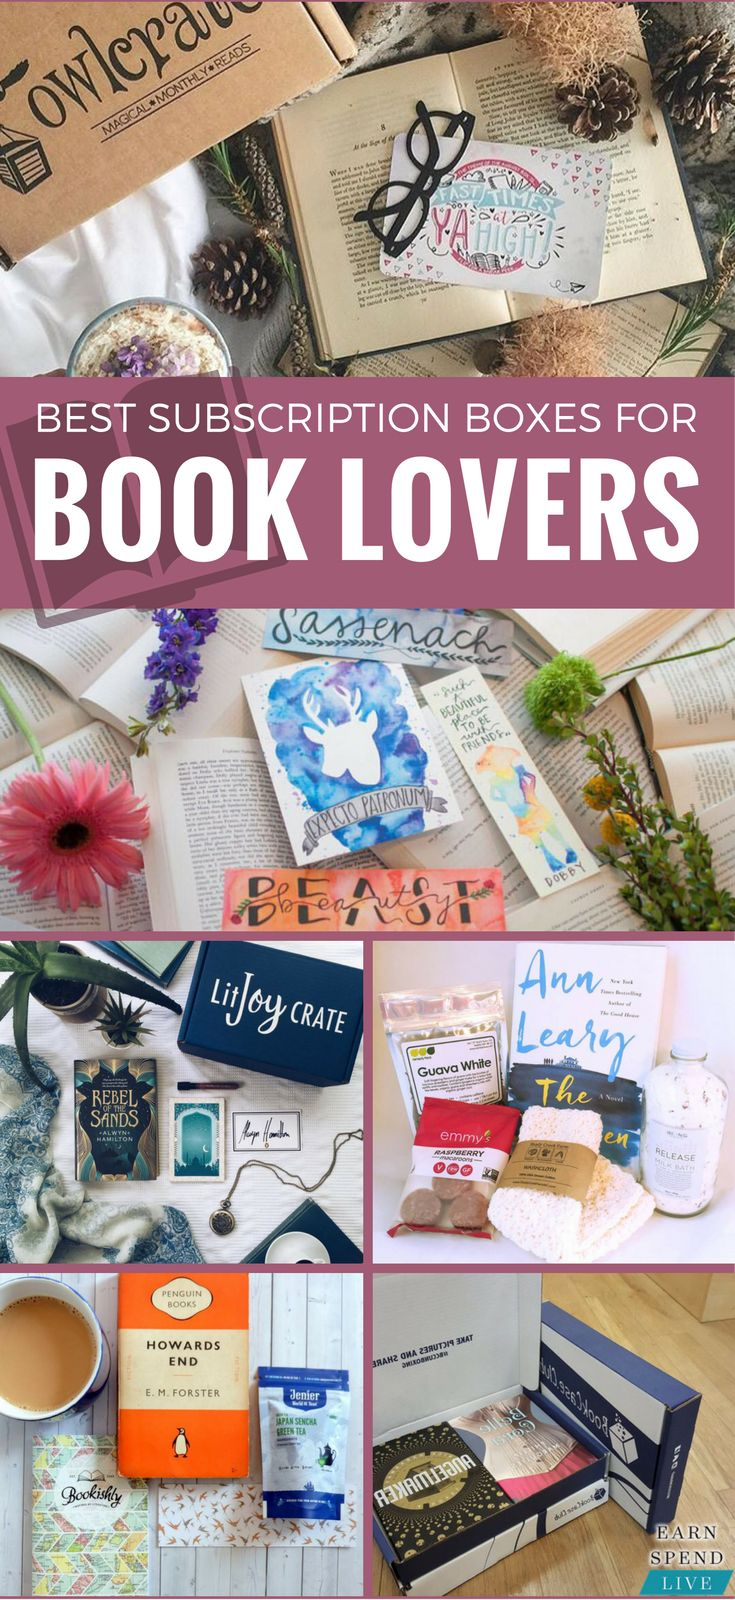 The Best Subscription Boxes For Book Lovers